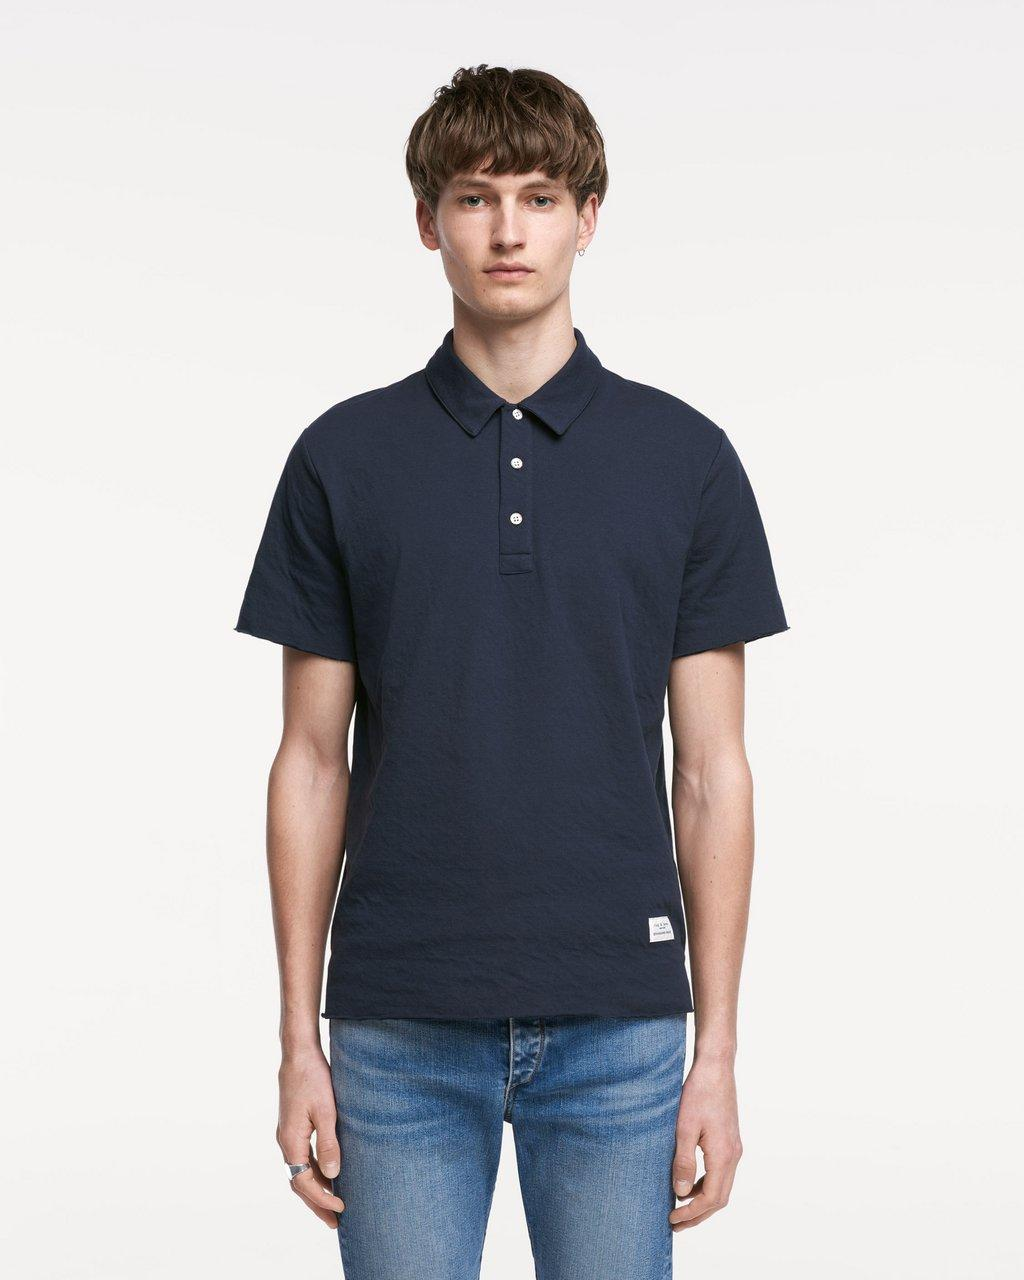 STANDARD ISSUE DOUBLE KNIT POLO